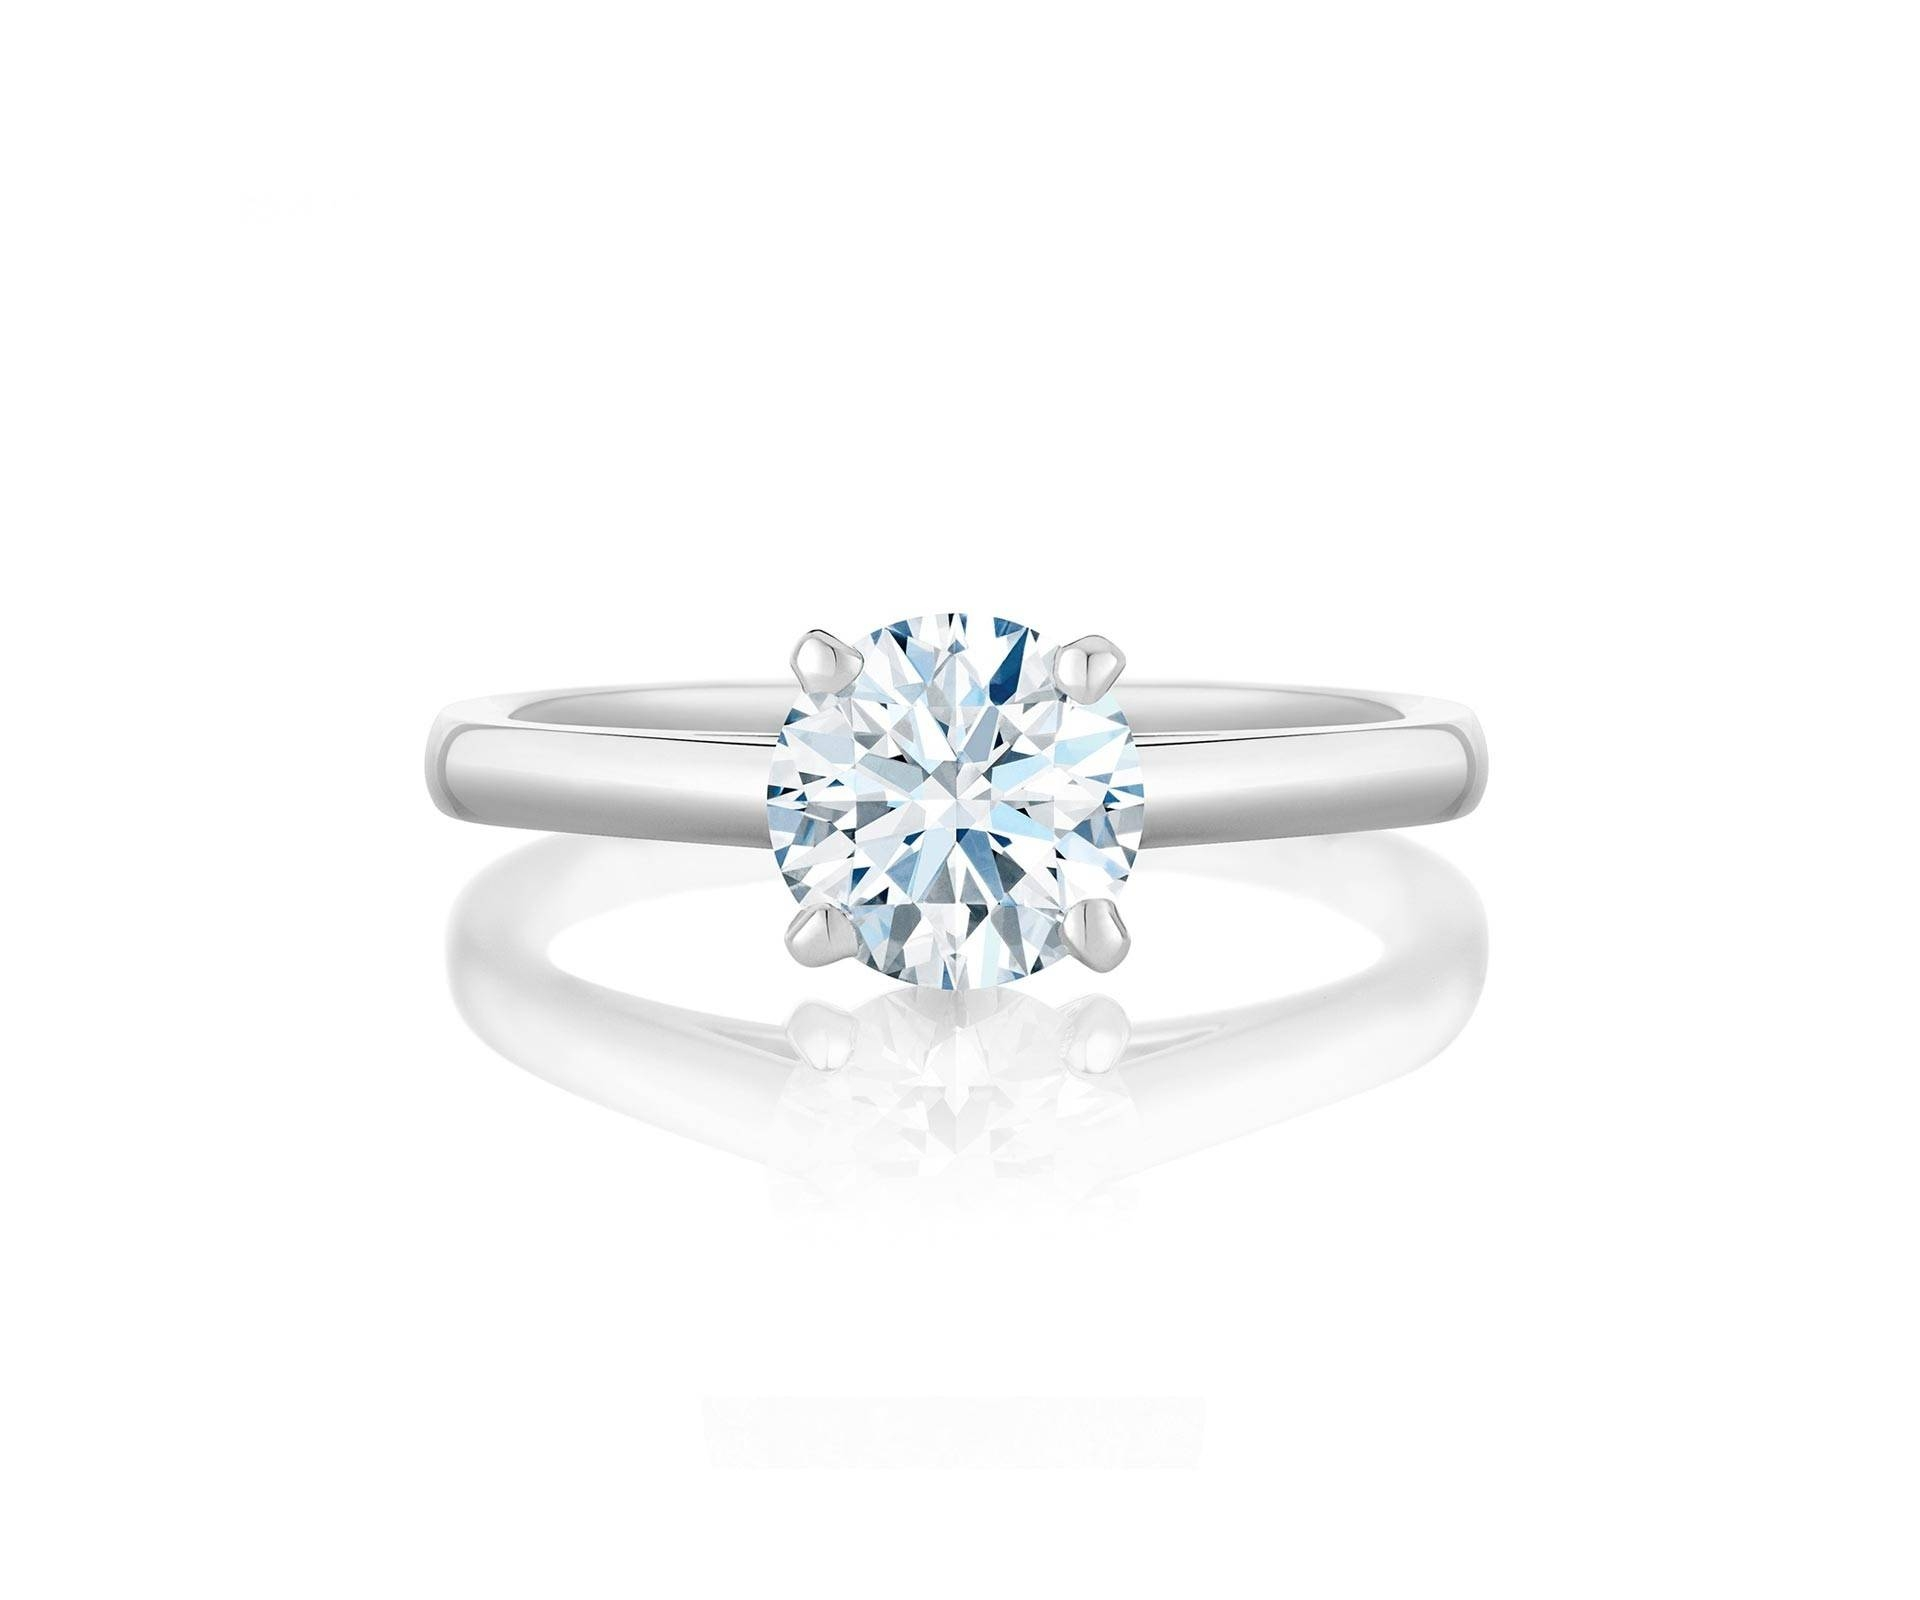 Diamond Engagement Rings & Promise Rings | De Beers Pertaining To Solitare Diamond Engagement Rings (View 4 of 15)